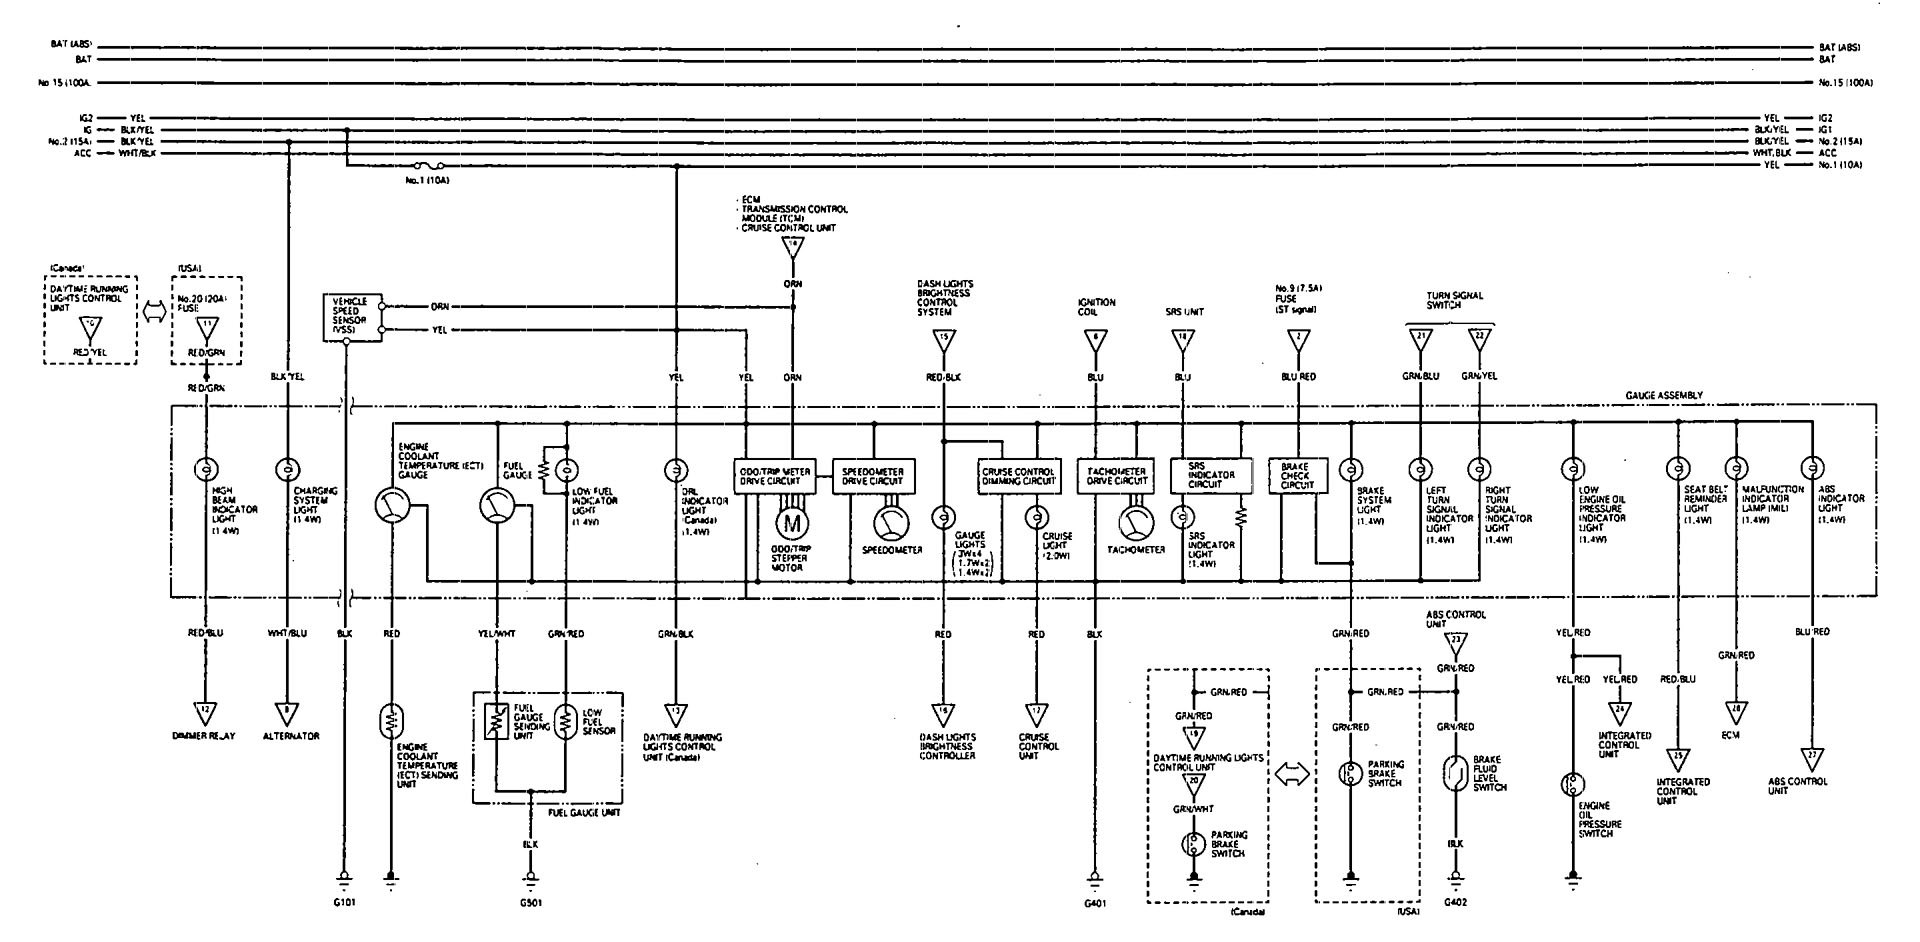 Volvo Fh12 Version 2 Wiring Diagram Manual Of Acura Vigor Fuse 1993 Diagrams Instrumentation